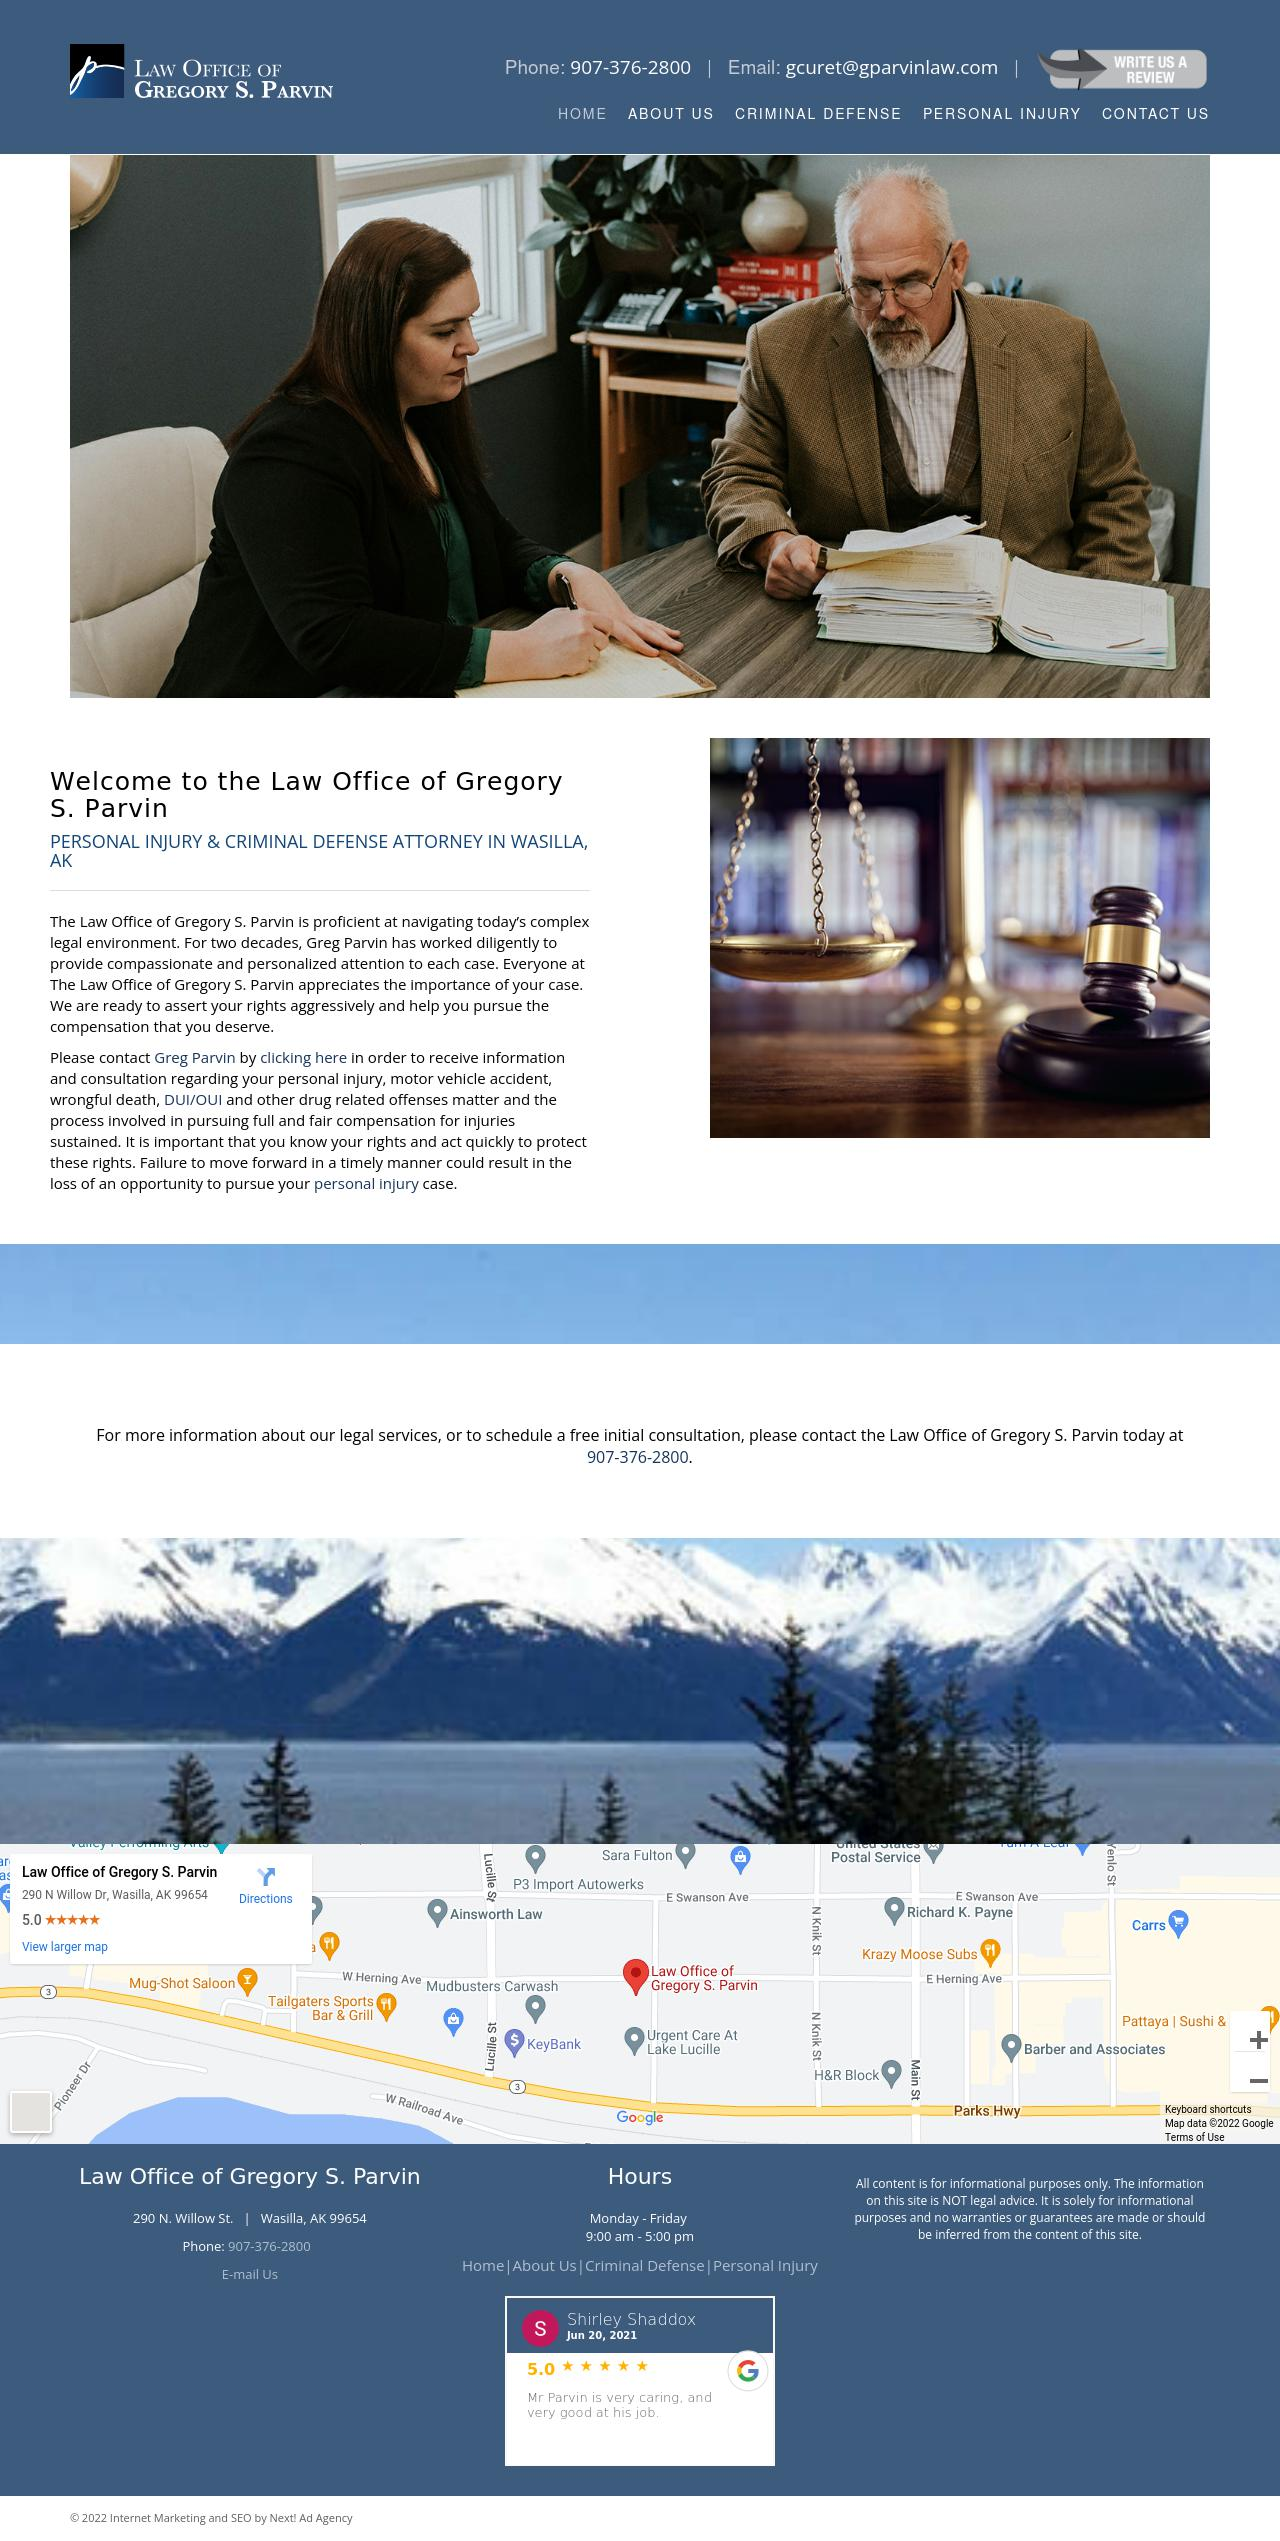 Law Office of Gregory S. Parvin - Wasilla AK Lawyers